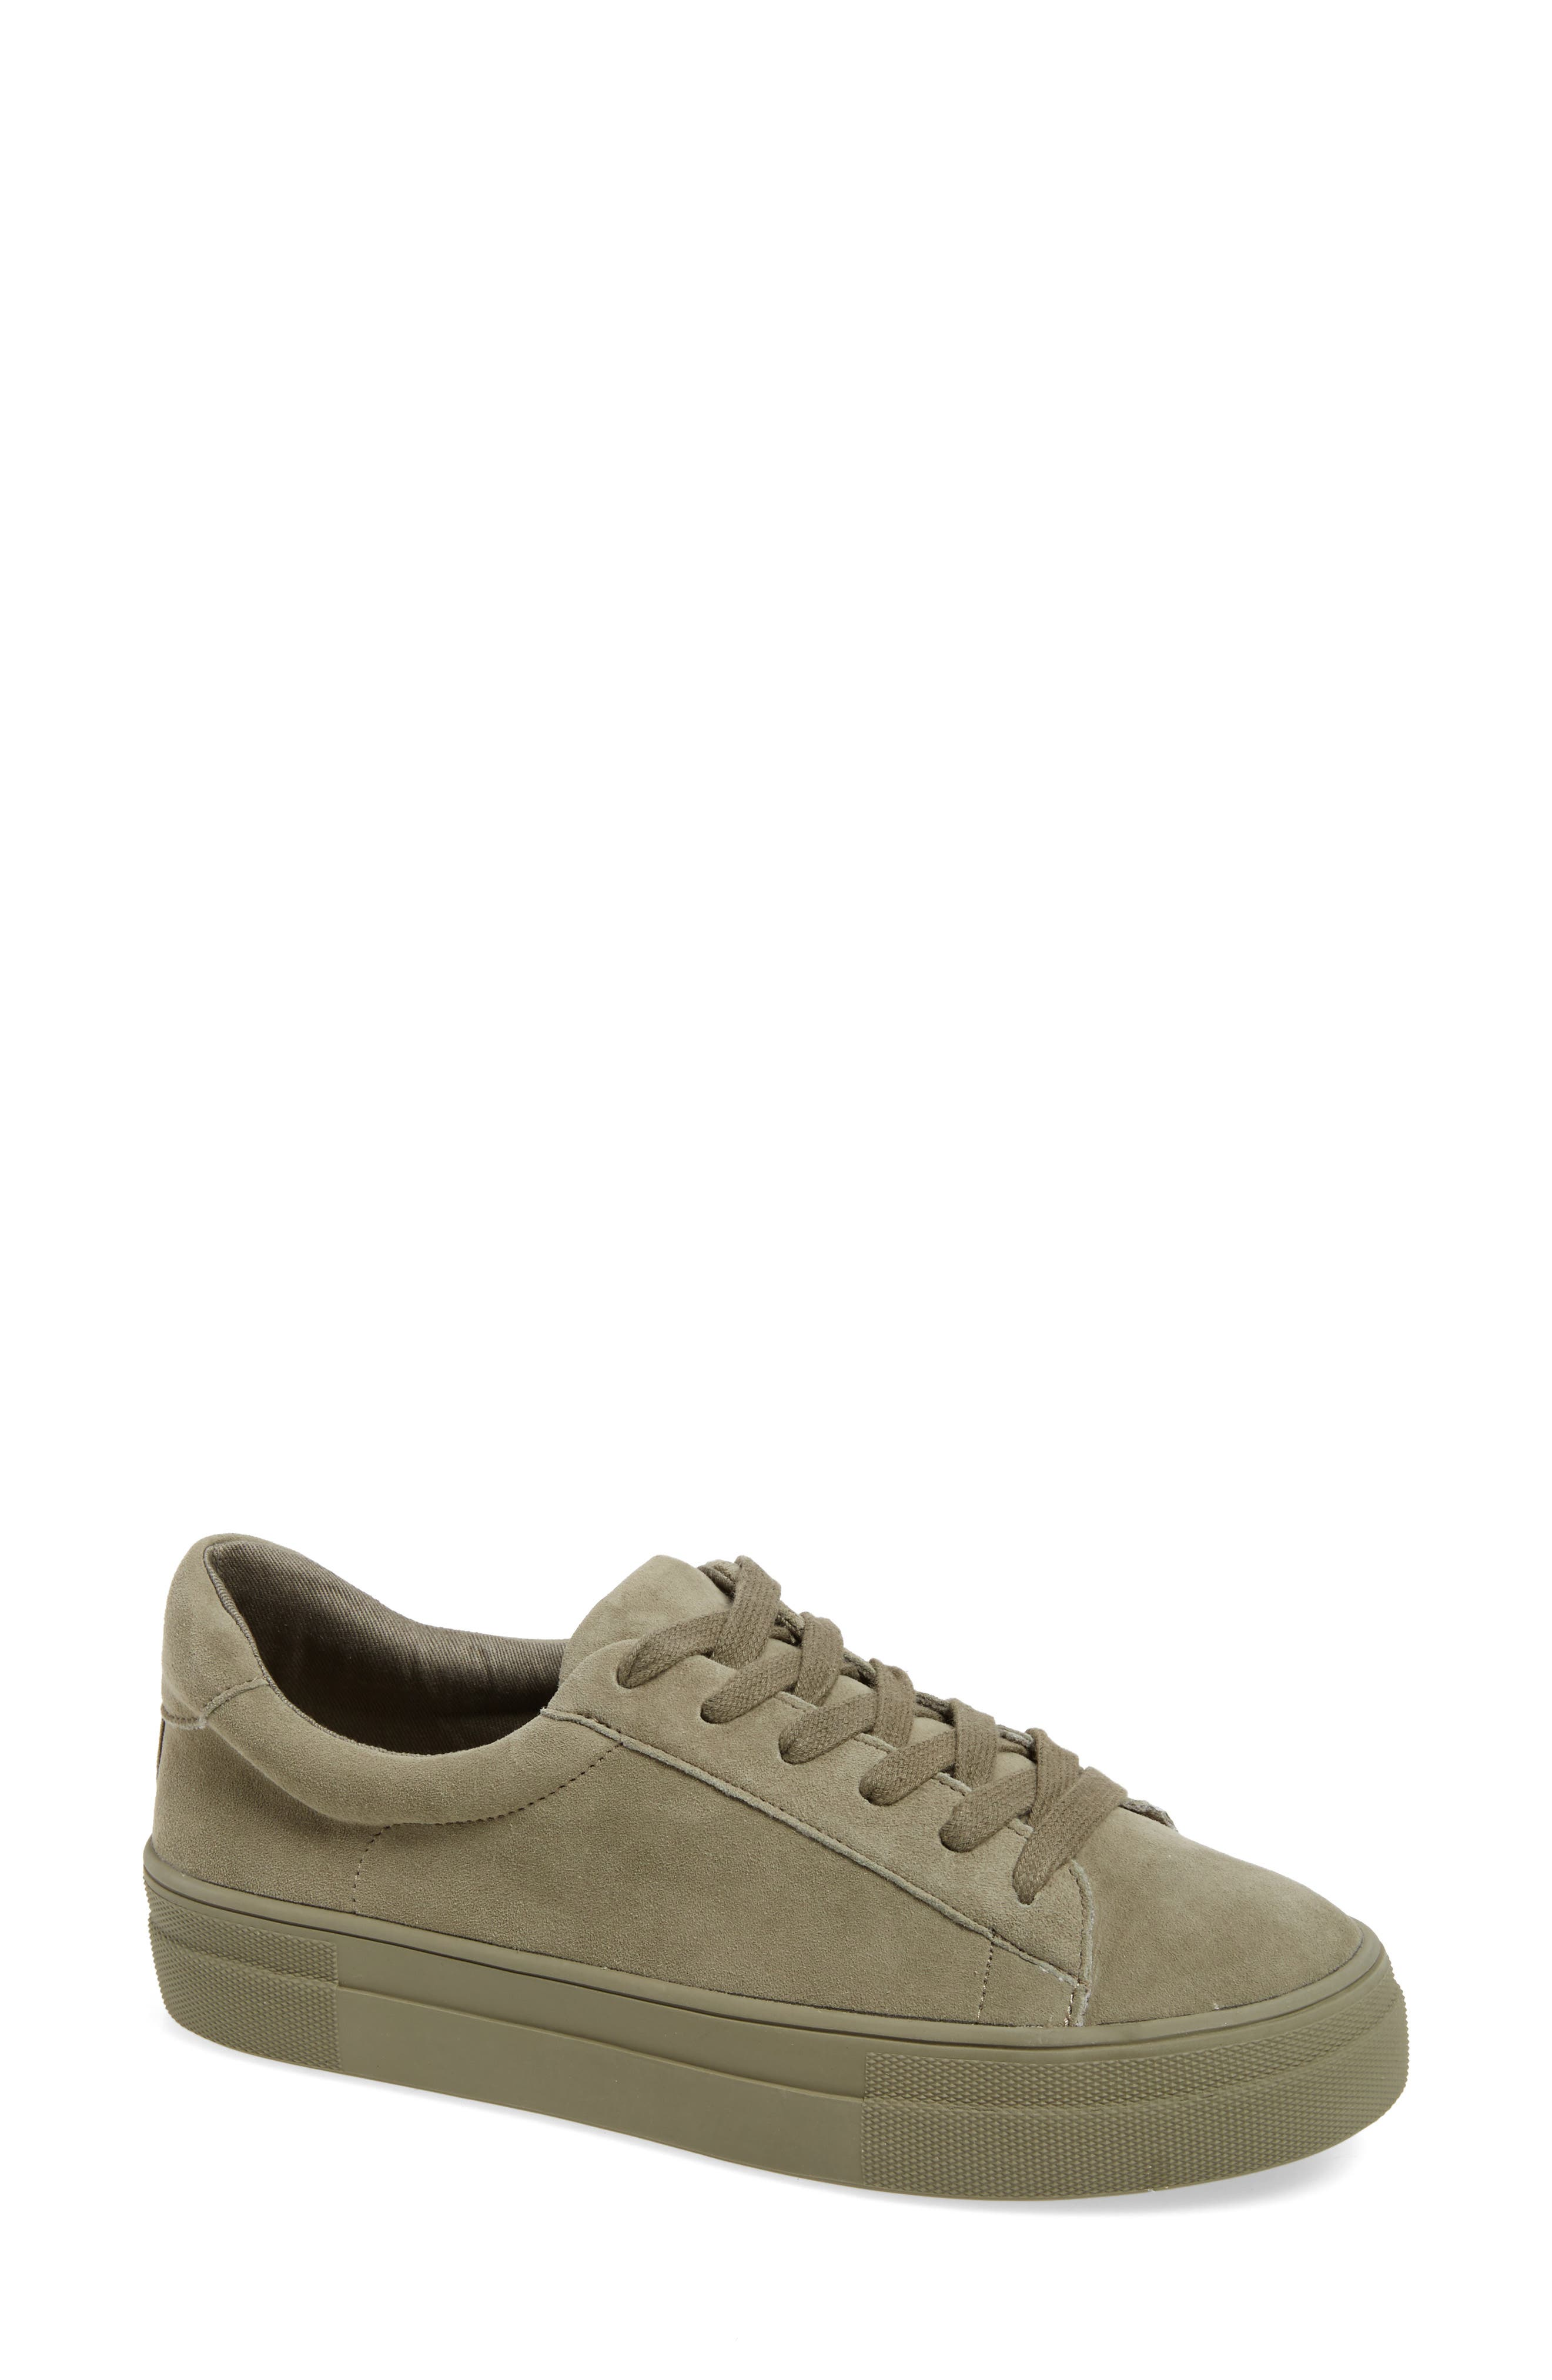 Gisela Low Top Sneaker,                             Main thumbnail 1, color,                             Olive Suede